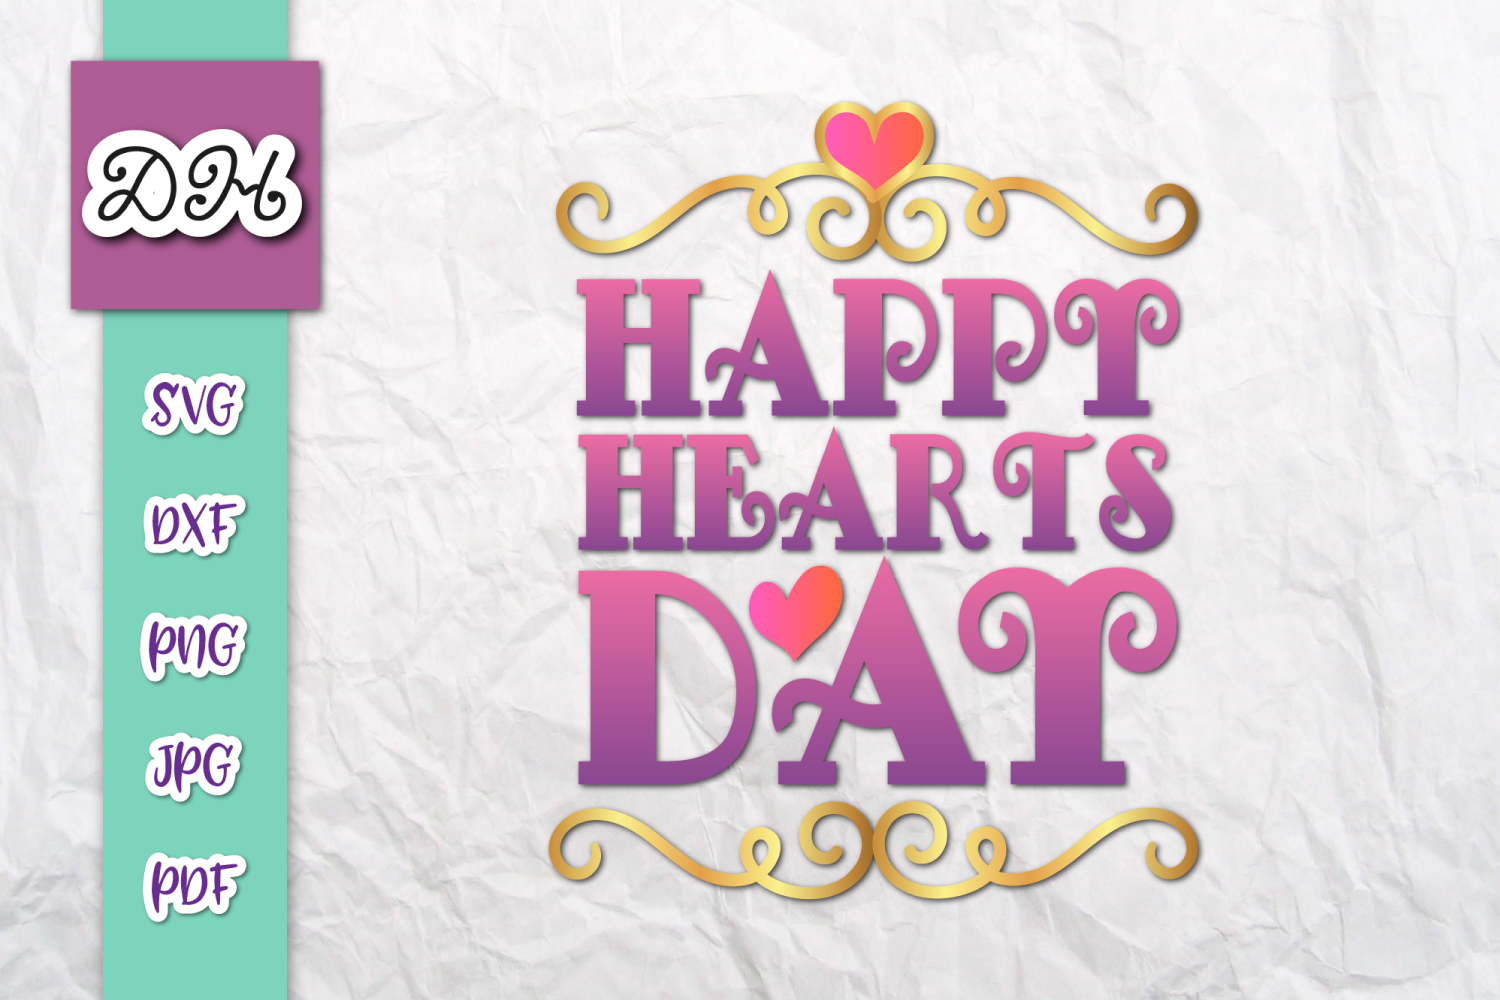 Happy Hearts Day Valentine's Sign Print & Cut File PNG SVG example image 1